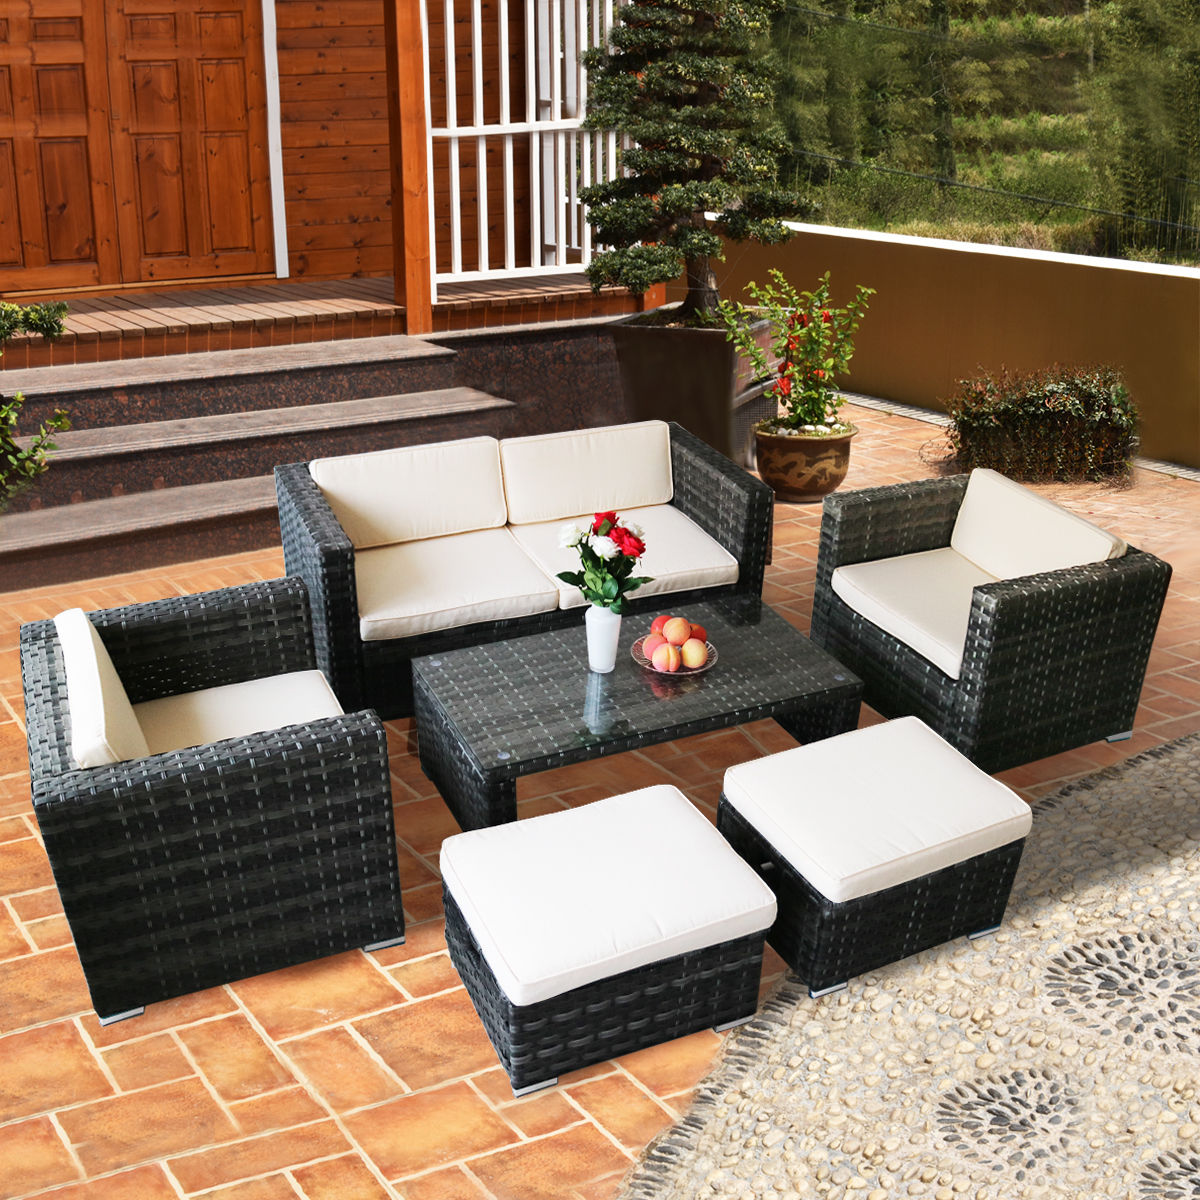 Costway 6 PCS Outdoor Rattan Wicker Sofa Sectional Furniture Set Patio Garden Backyard by Costway